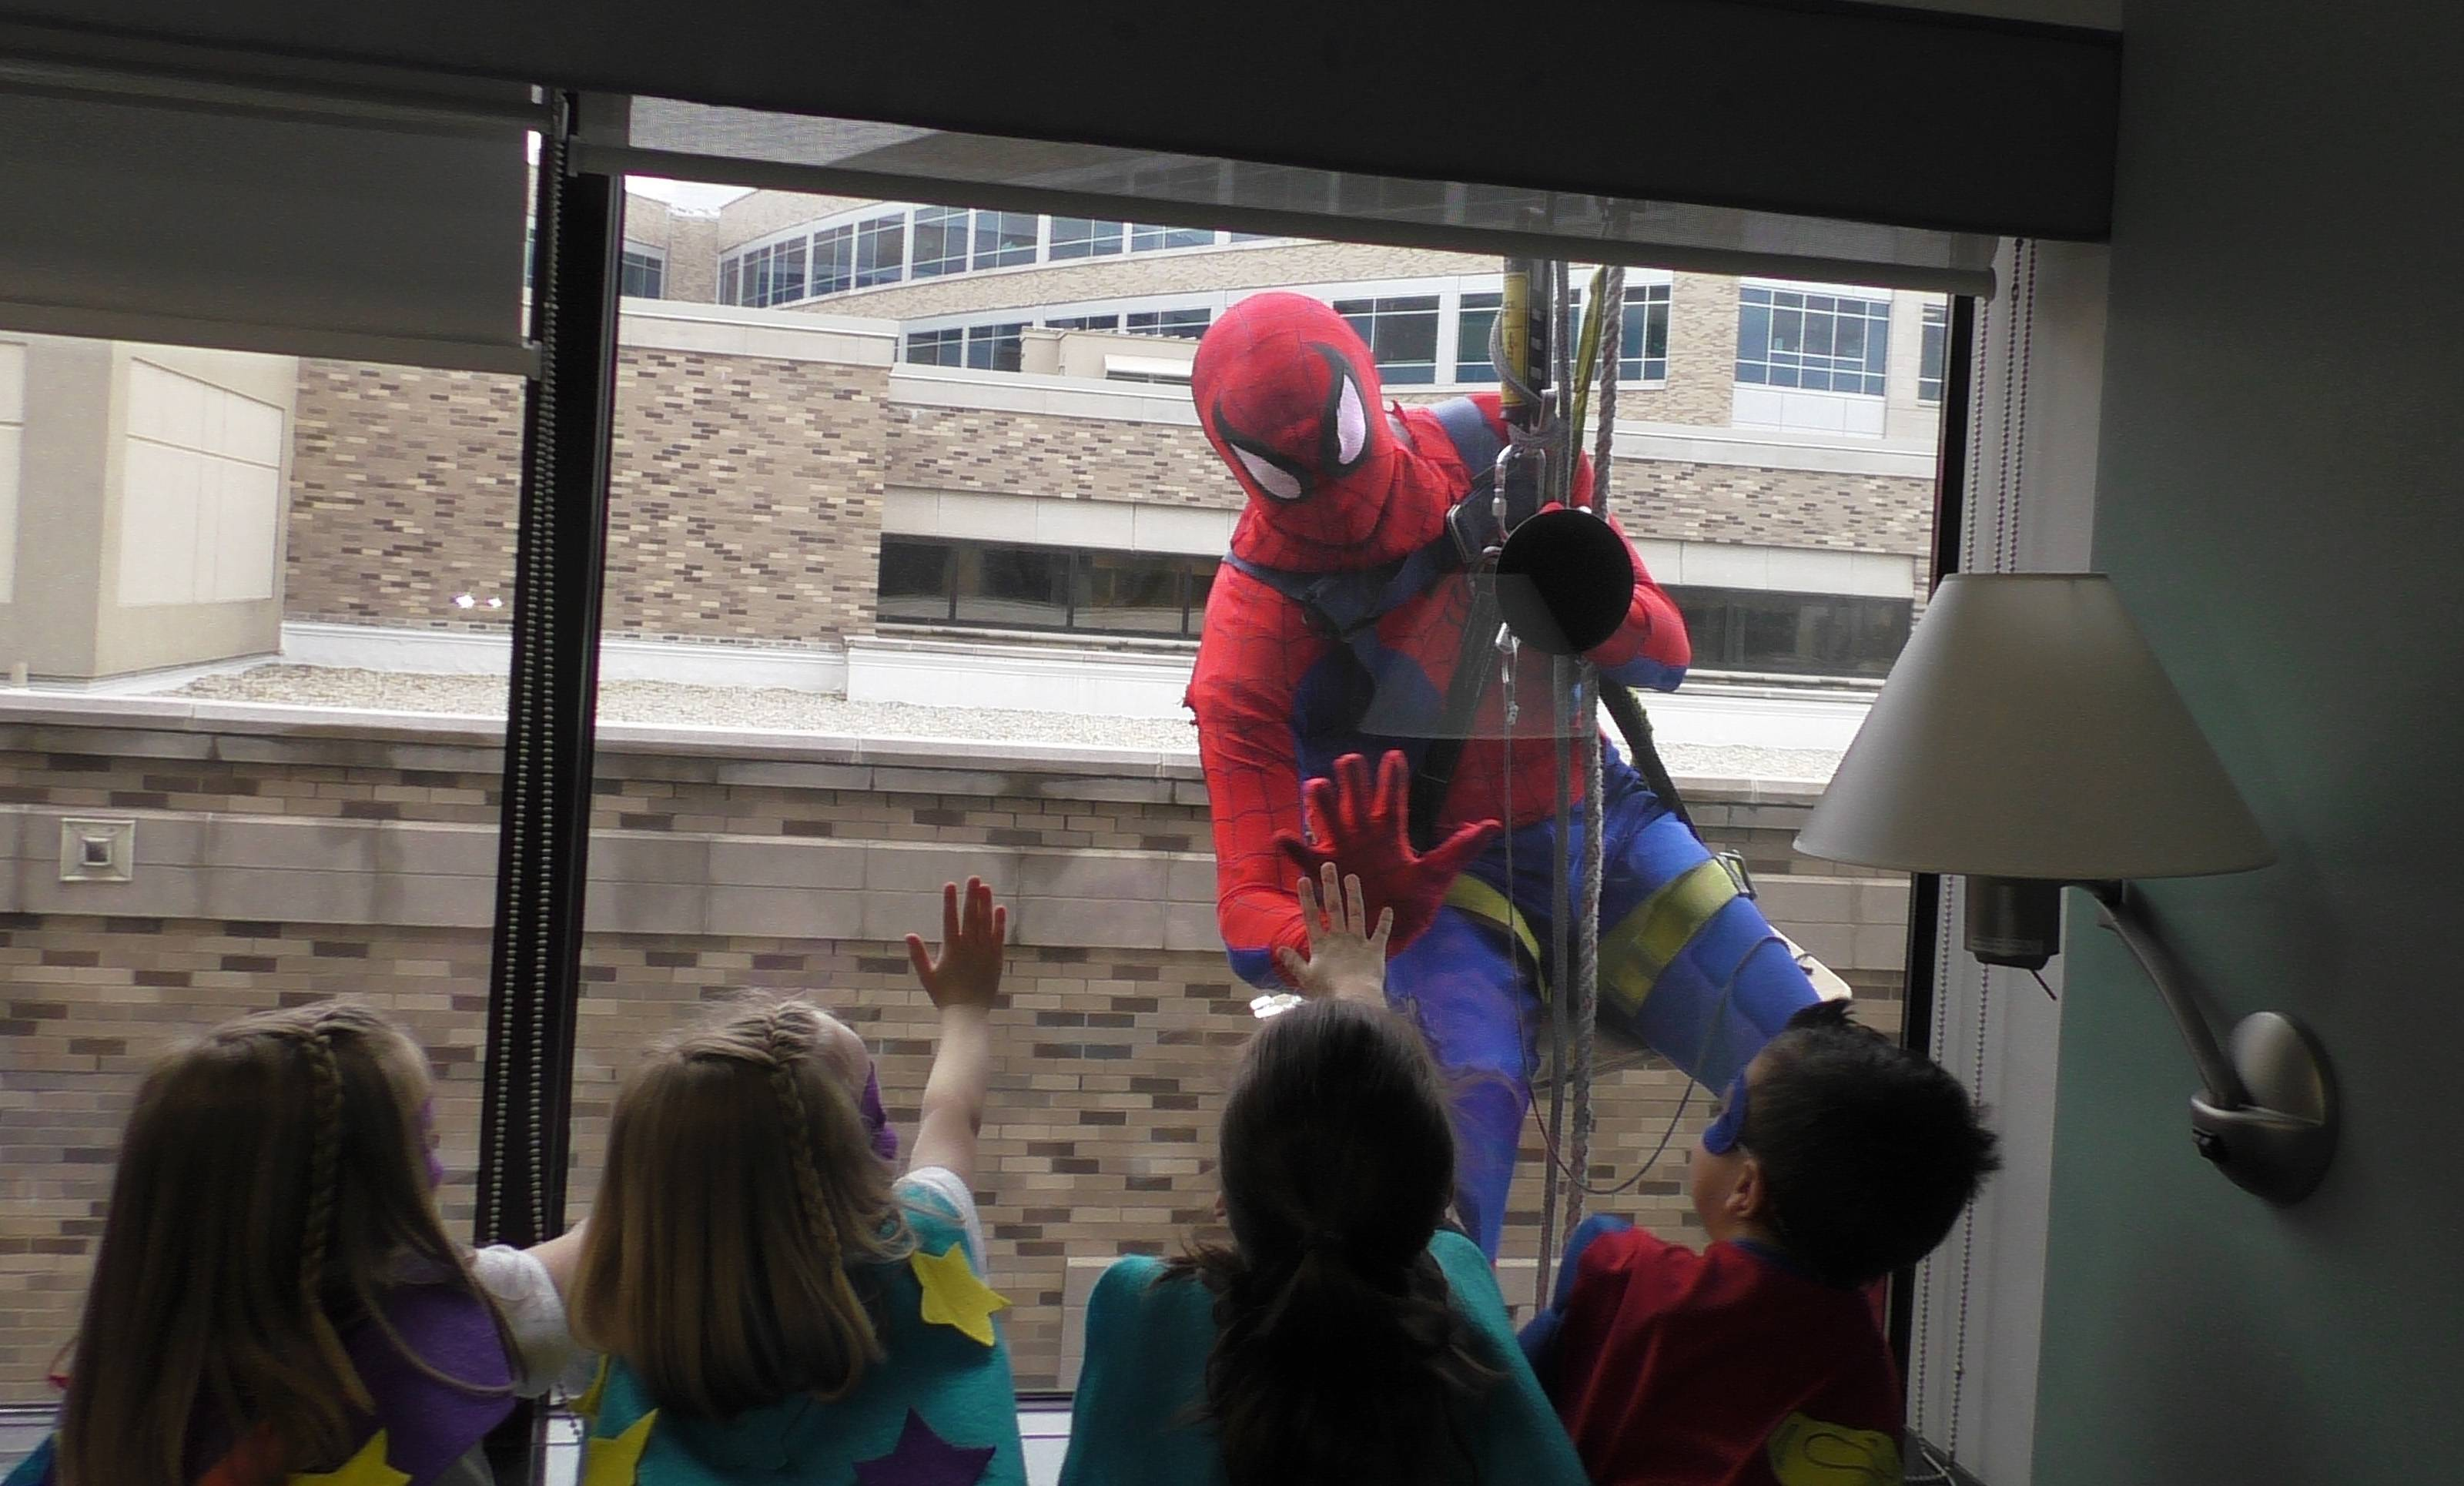 Patients in Central DuPage Hospital's pediatric unit participated in a National Superhero Day event Monday, complete with handmade capes, mask decorations and window washers dressed as superheroes.